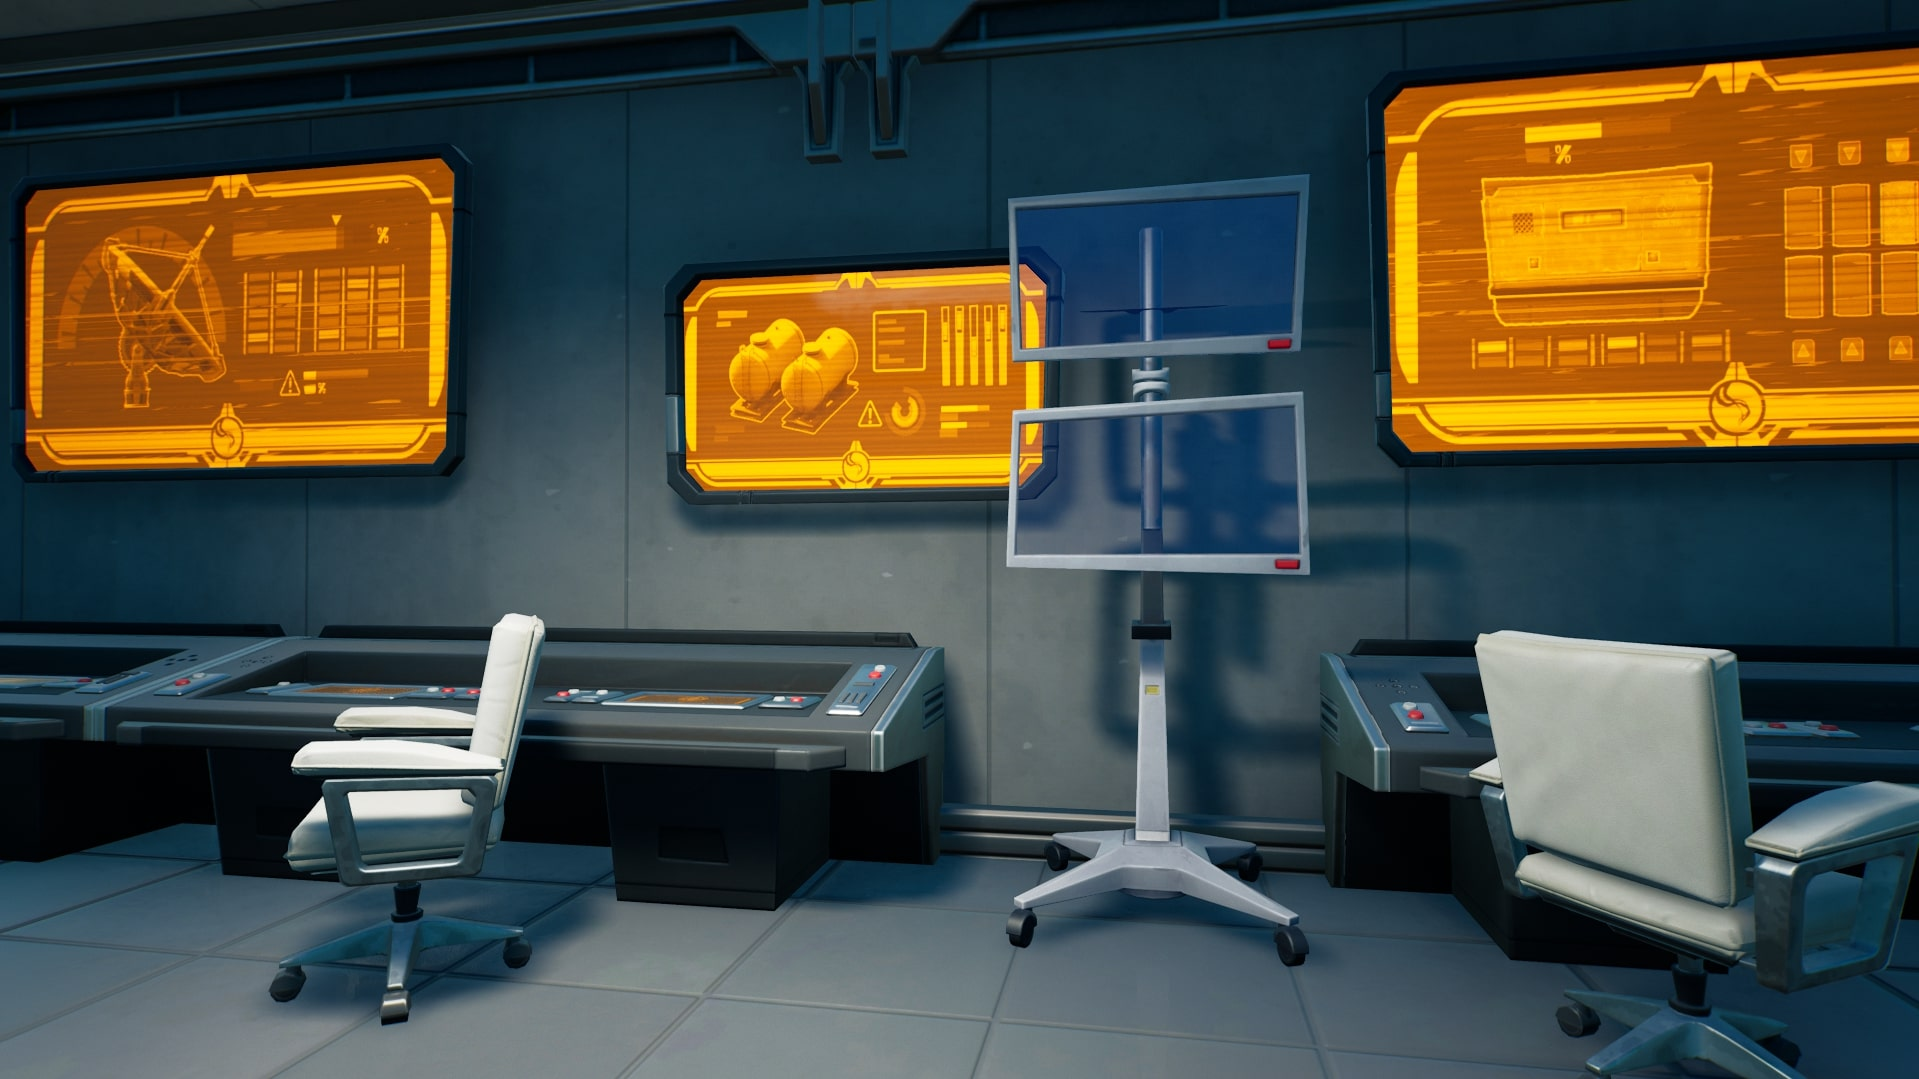 Fortnite's IO equipment that's in need of repair in an office with orange displays